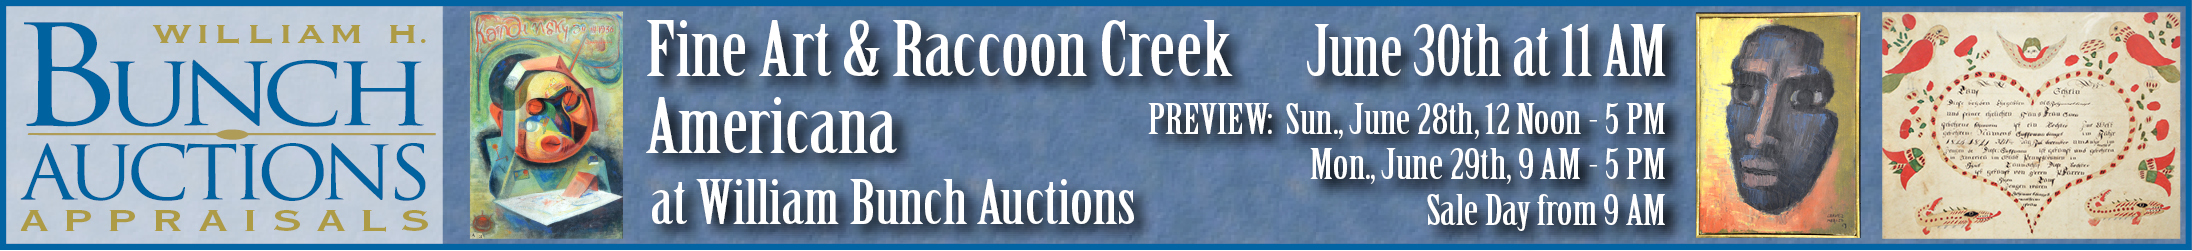 William H. Bunch - Auctions & Appraisals